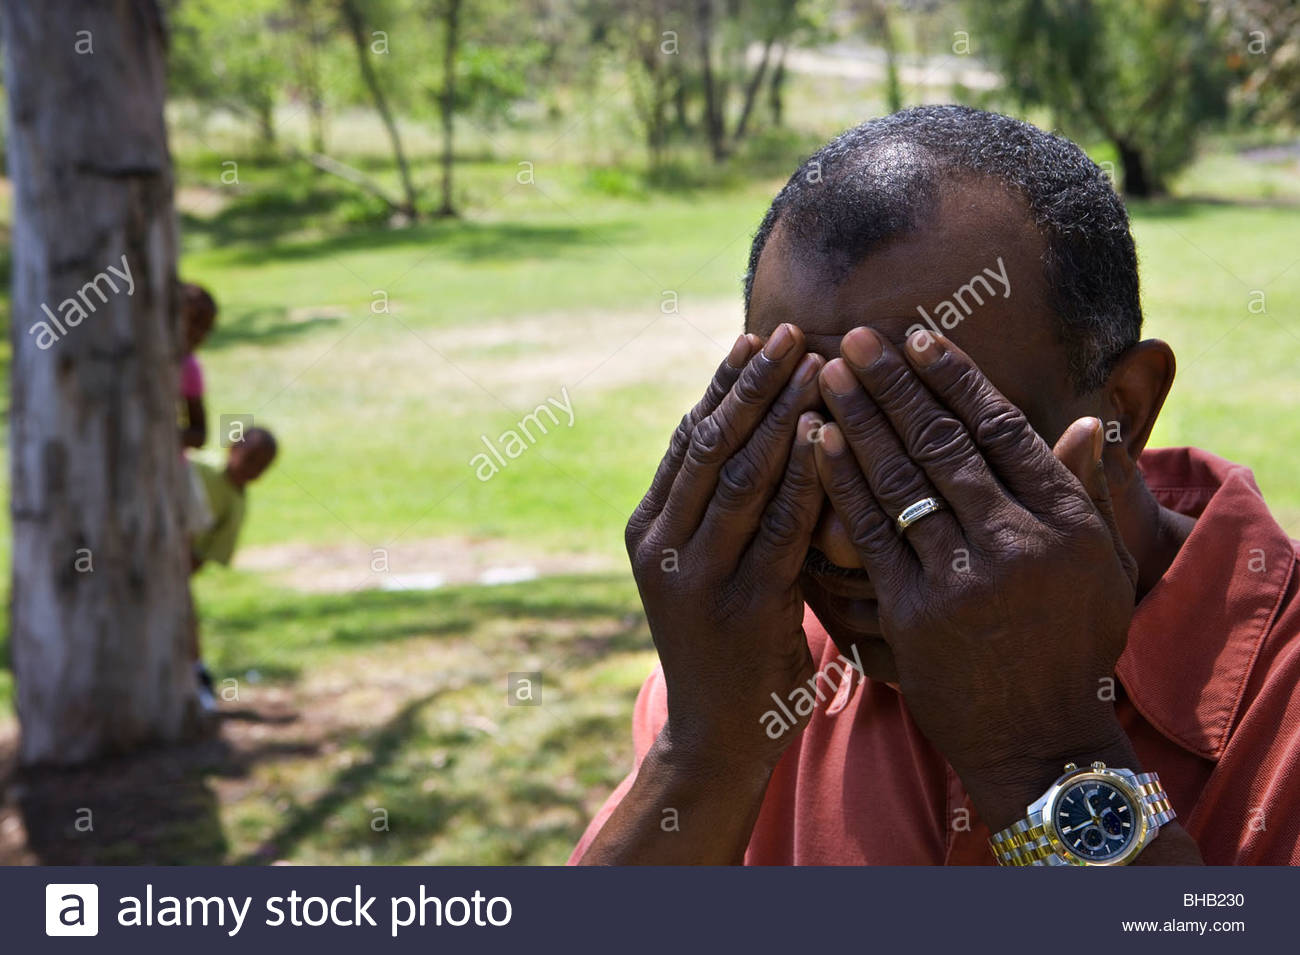 Children (6-10) playing hide and seek with grandfather in park, senior man covering eyes - Stock Image